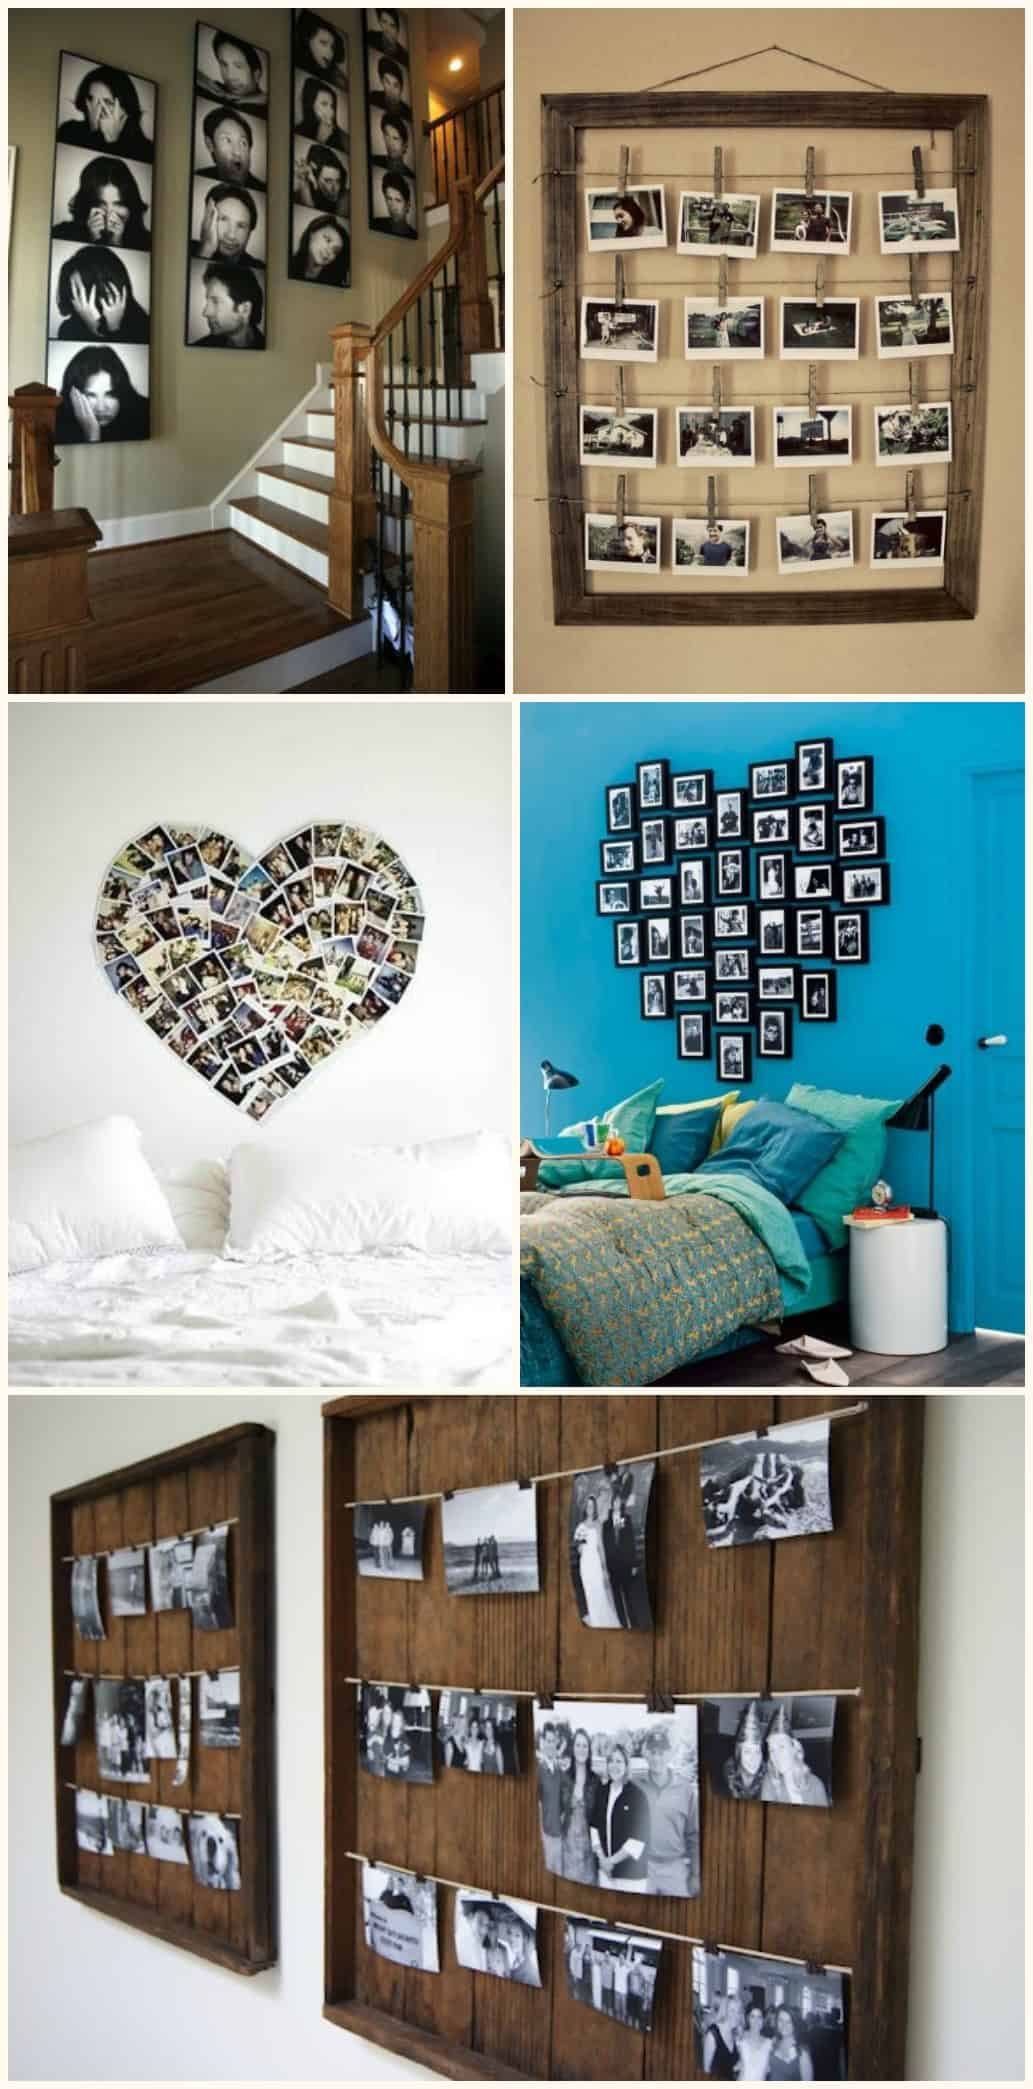 Diy 10 idee su come decorare una parete di casa for Parete di fotografie